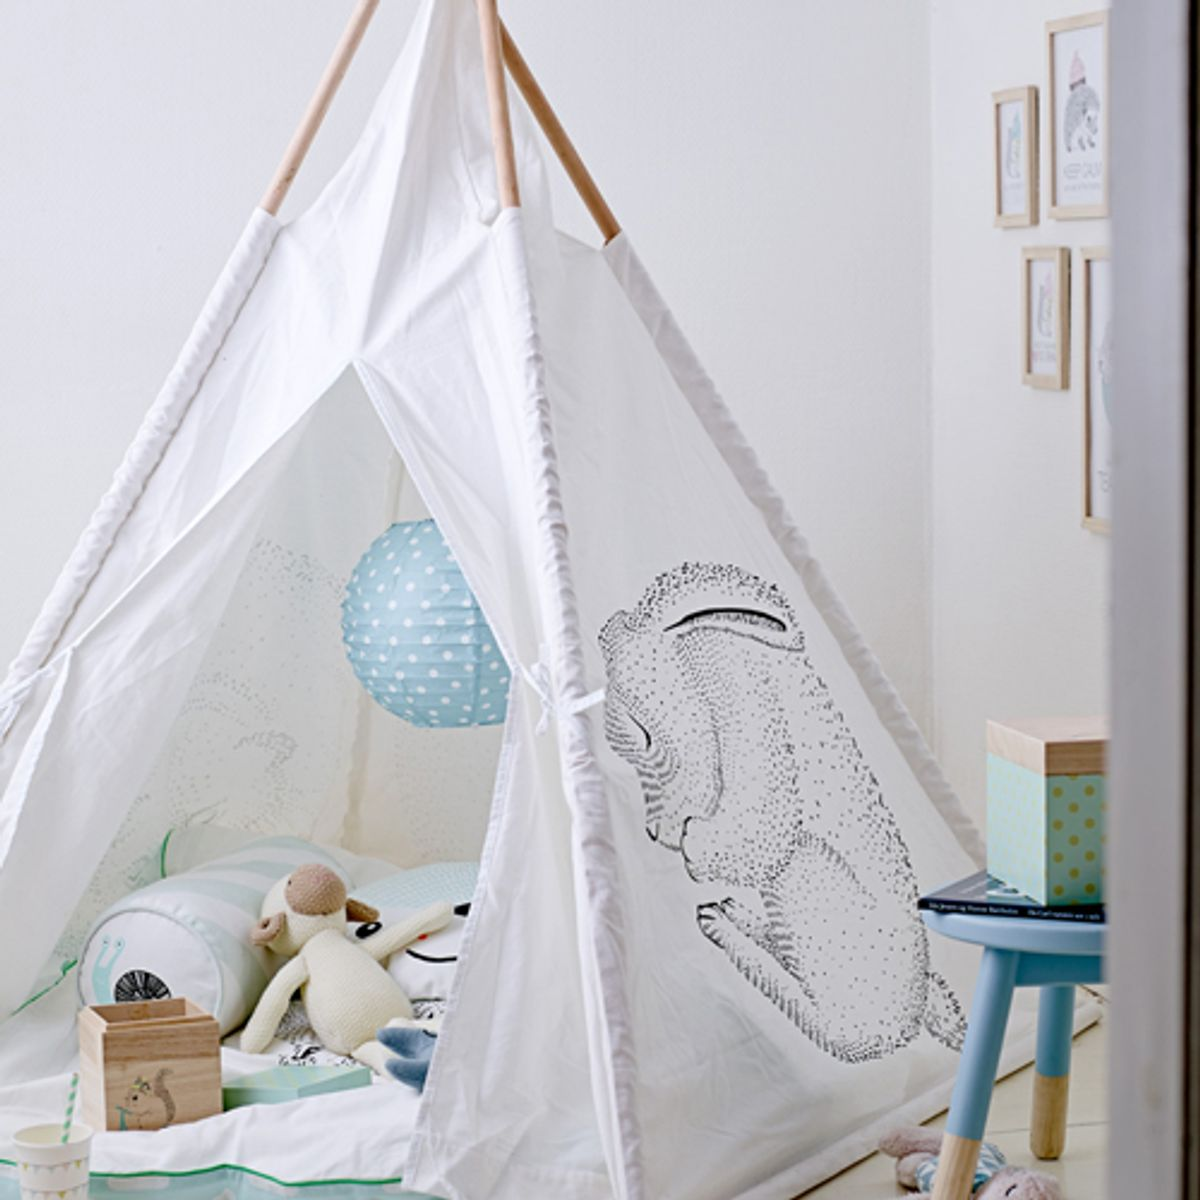 tente tipi pour enfant en bois et coton cr me bloomingville decoclico. Black Bedroom Furniture Sets. Home Design Ideas